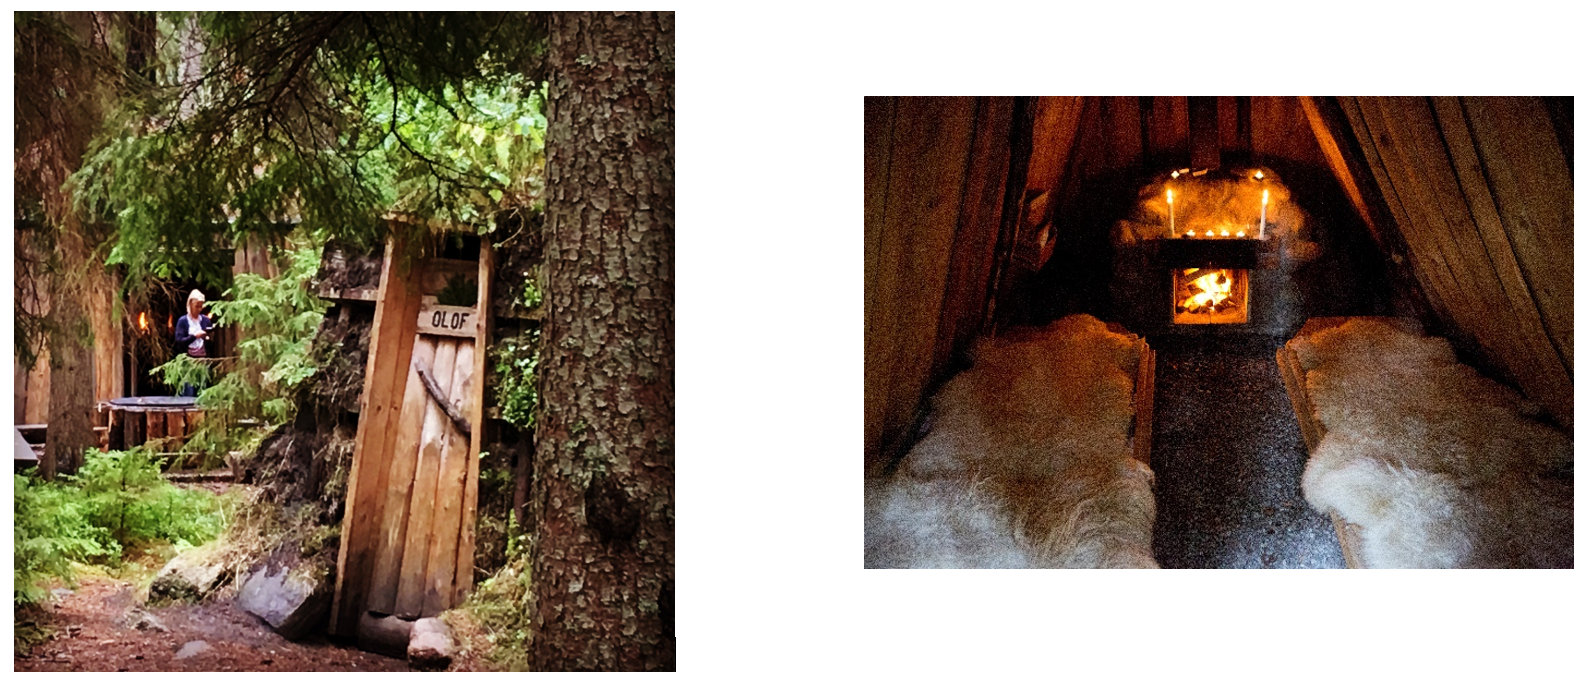 Charcoal hut at Kolarbyn Eco-lodge. Left picture taken by Malin Bruce, right picture taken bu Andreas.